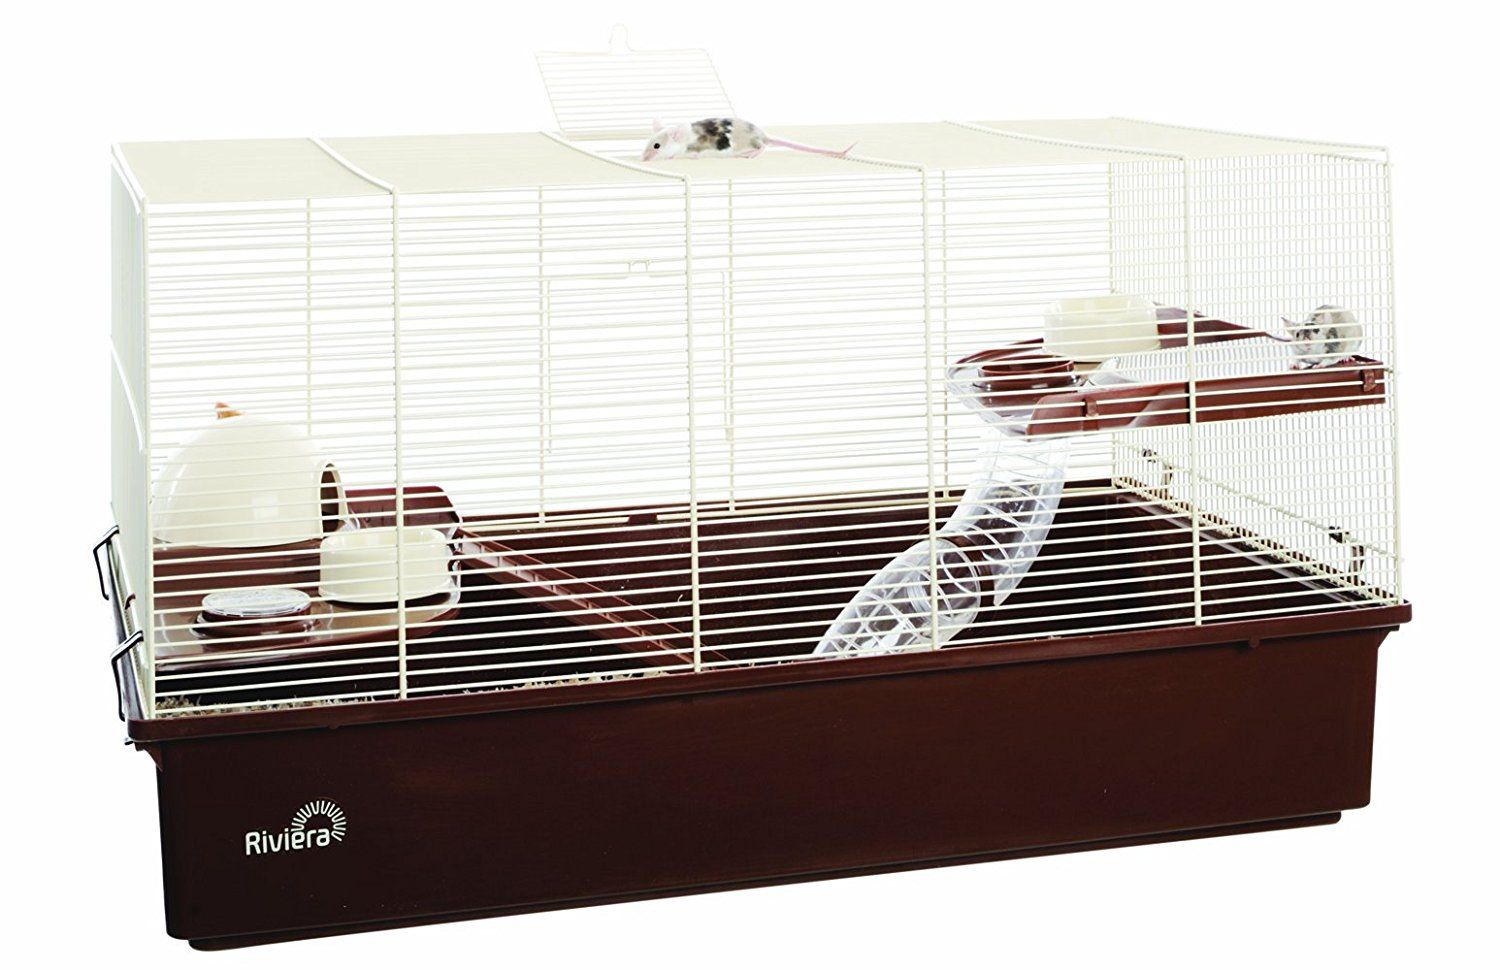 Lixit Animal Care Savic Mickey 2 Mice And Swarf Hamster Cage X Large Best Hamster Cage Cool Hamster Cages Large Hamster Cages Hamster Cage